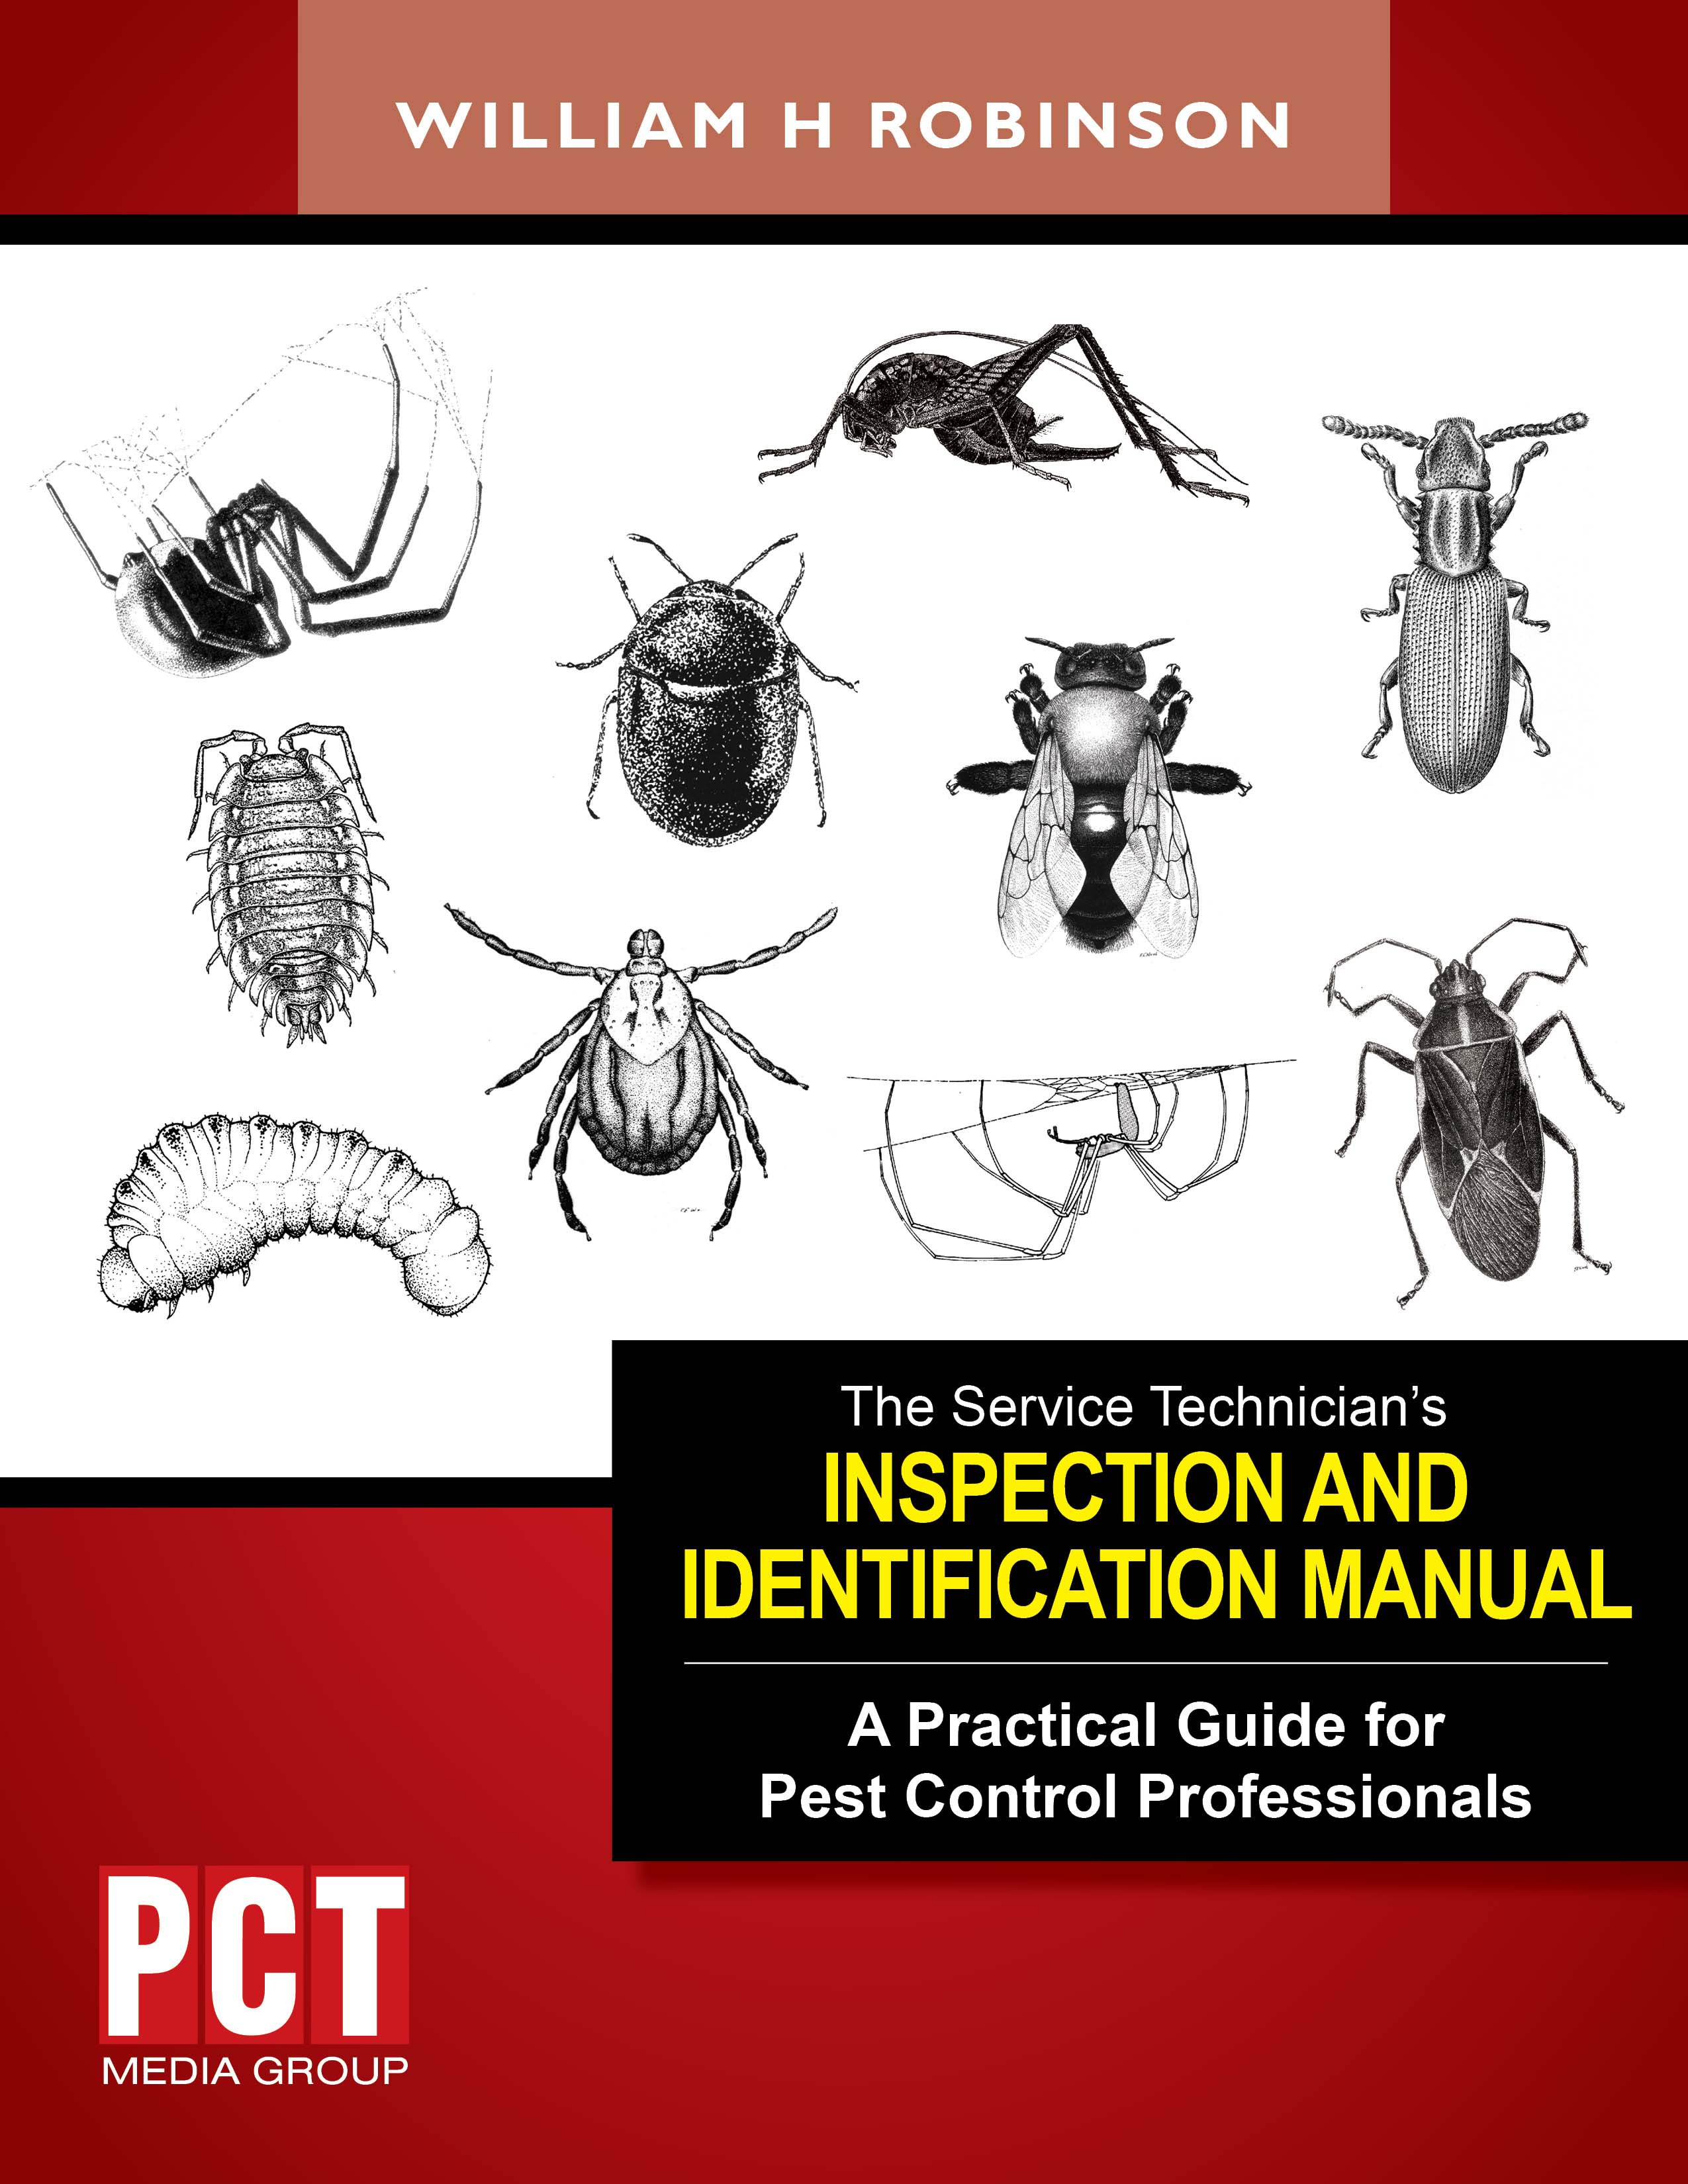 Service Technician's Inspection and Identification Manual - Image